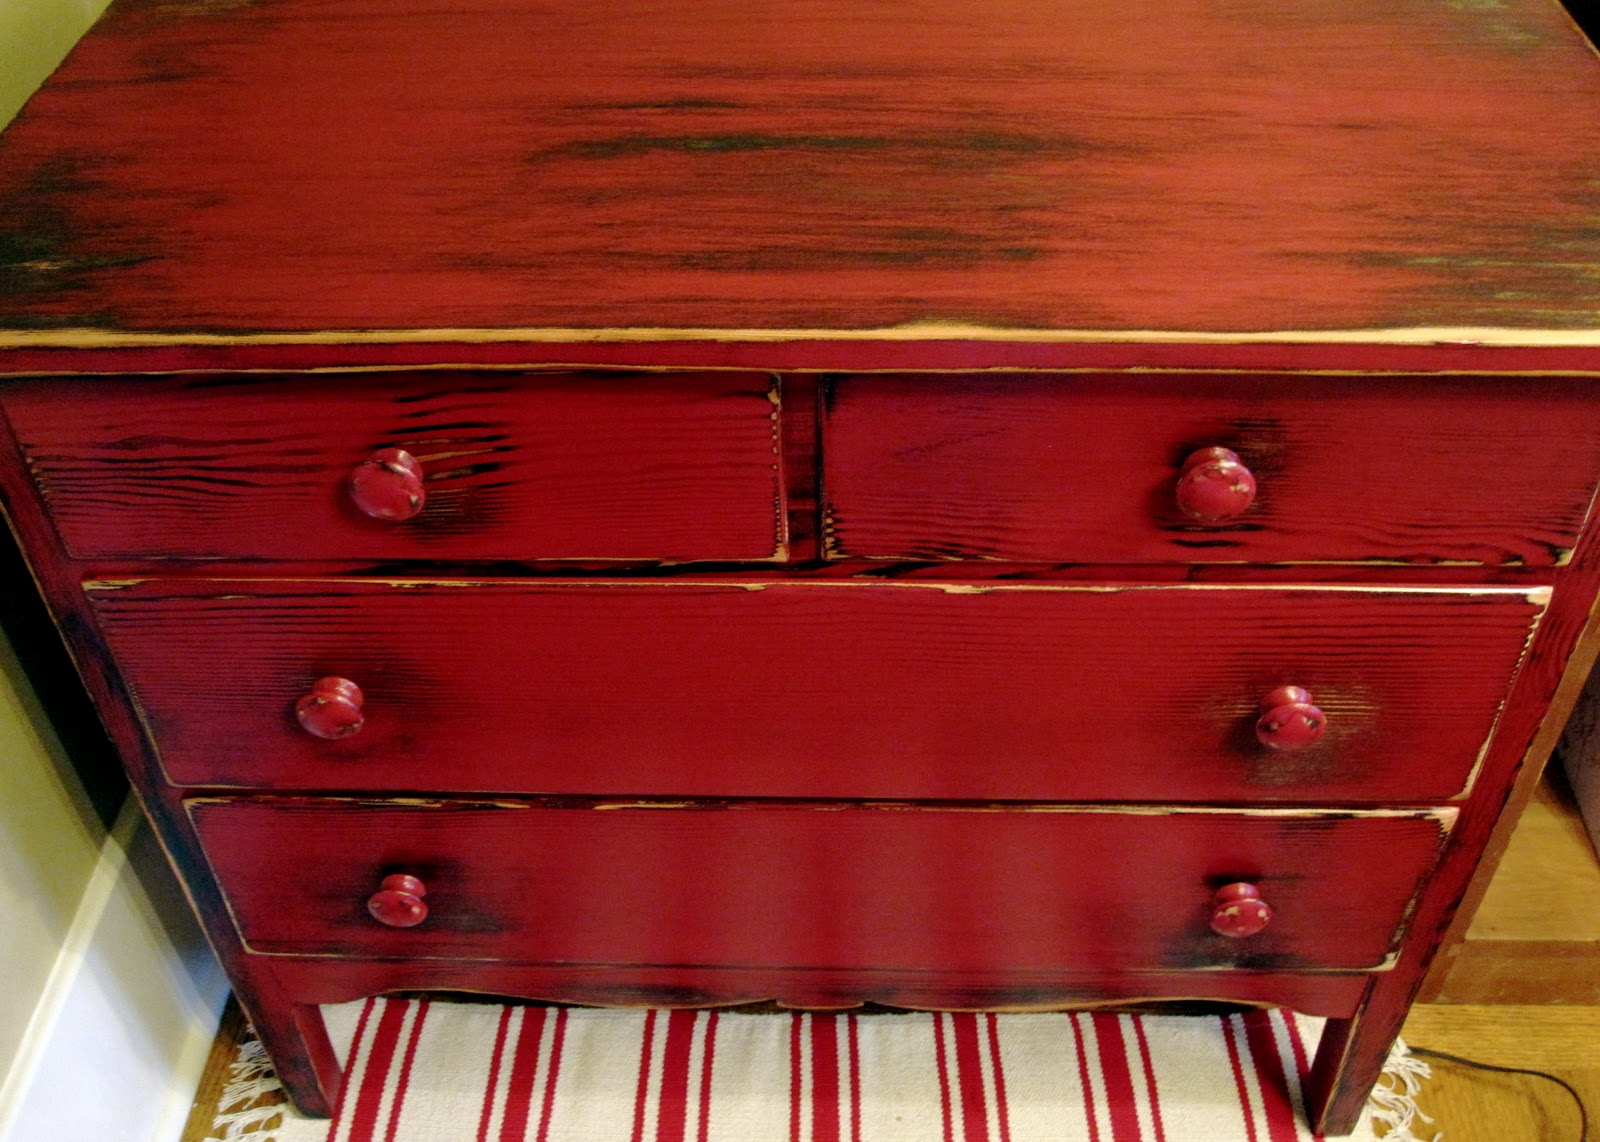 Merveilleux Stunning Distressed Furniture Red Pictures House Design Ideas